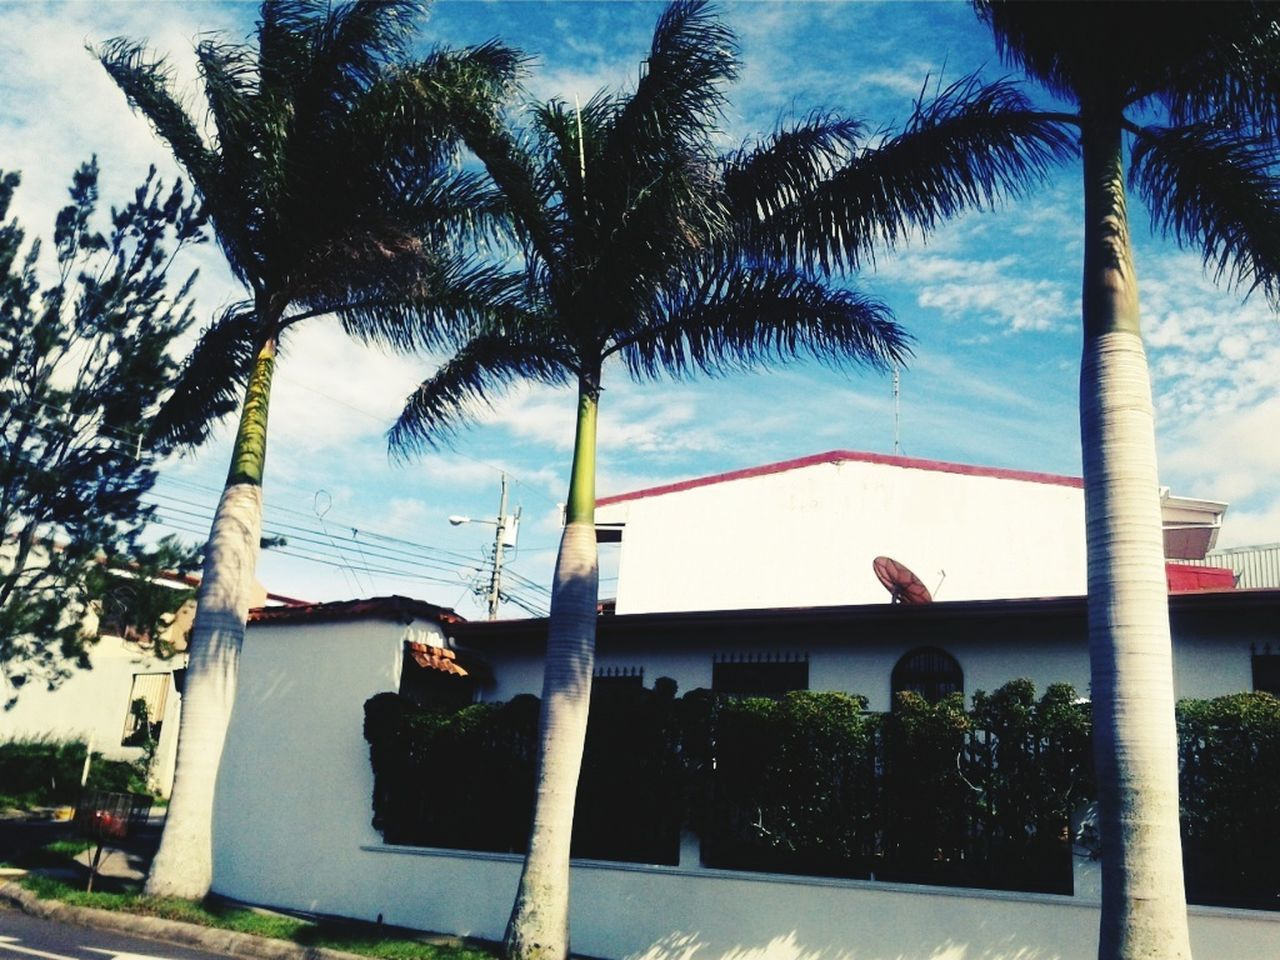 tree, built structure, palm tree, architecture, building exterior, sky, day, outdoors, no people, tree trunk, low angle view, nature, growth, beauty in nature